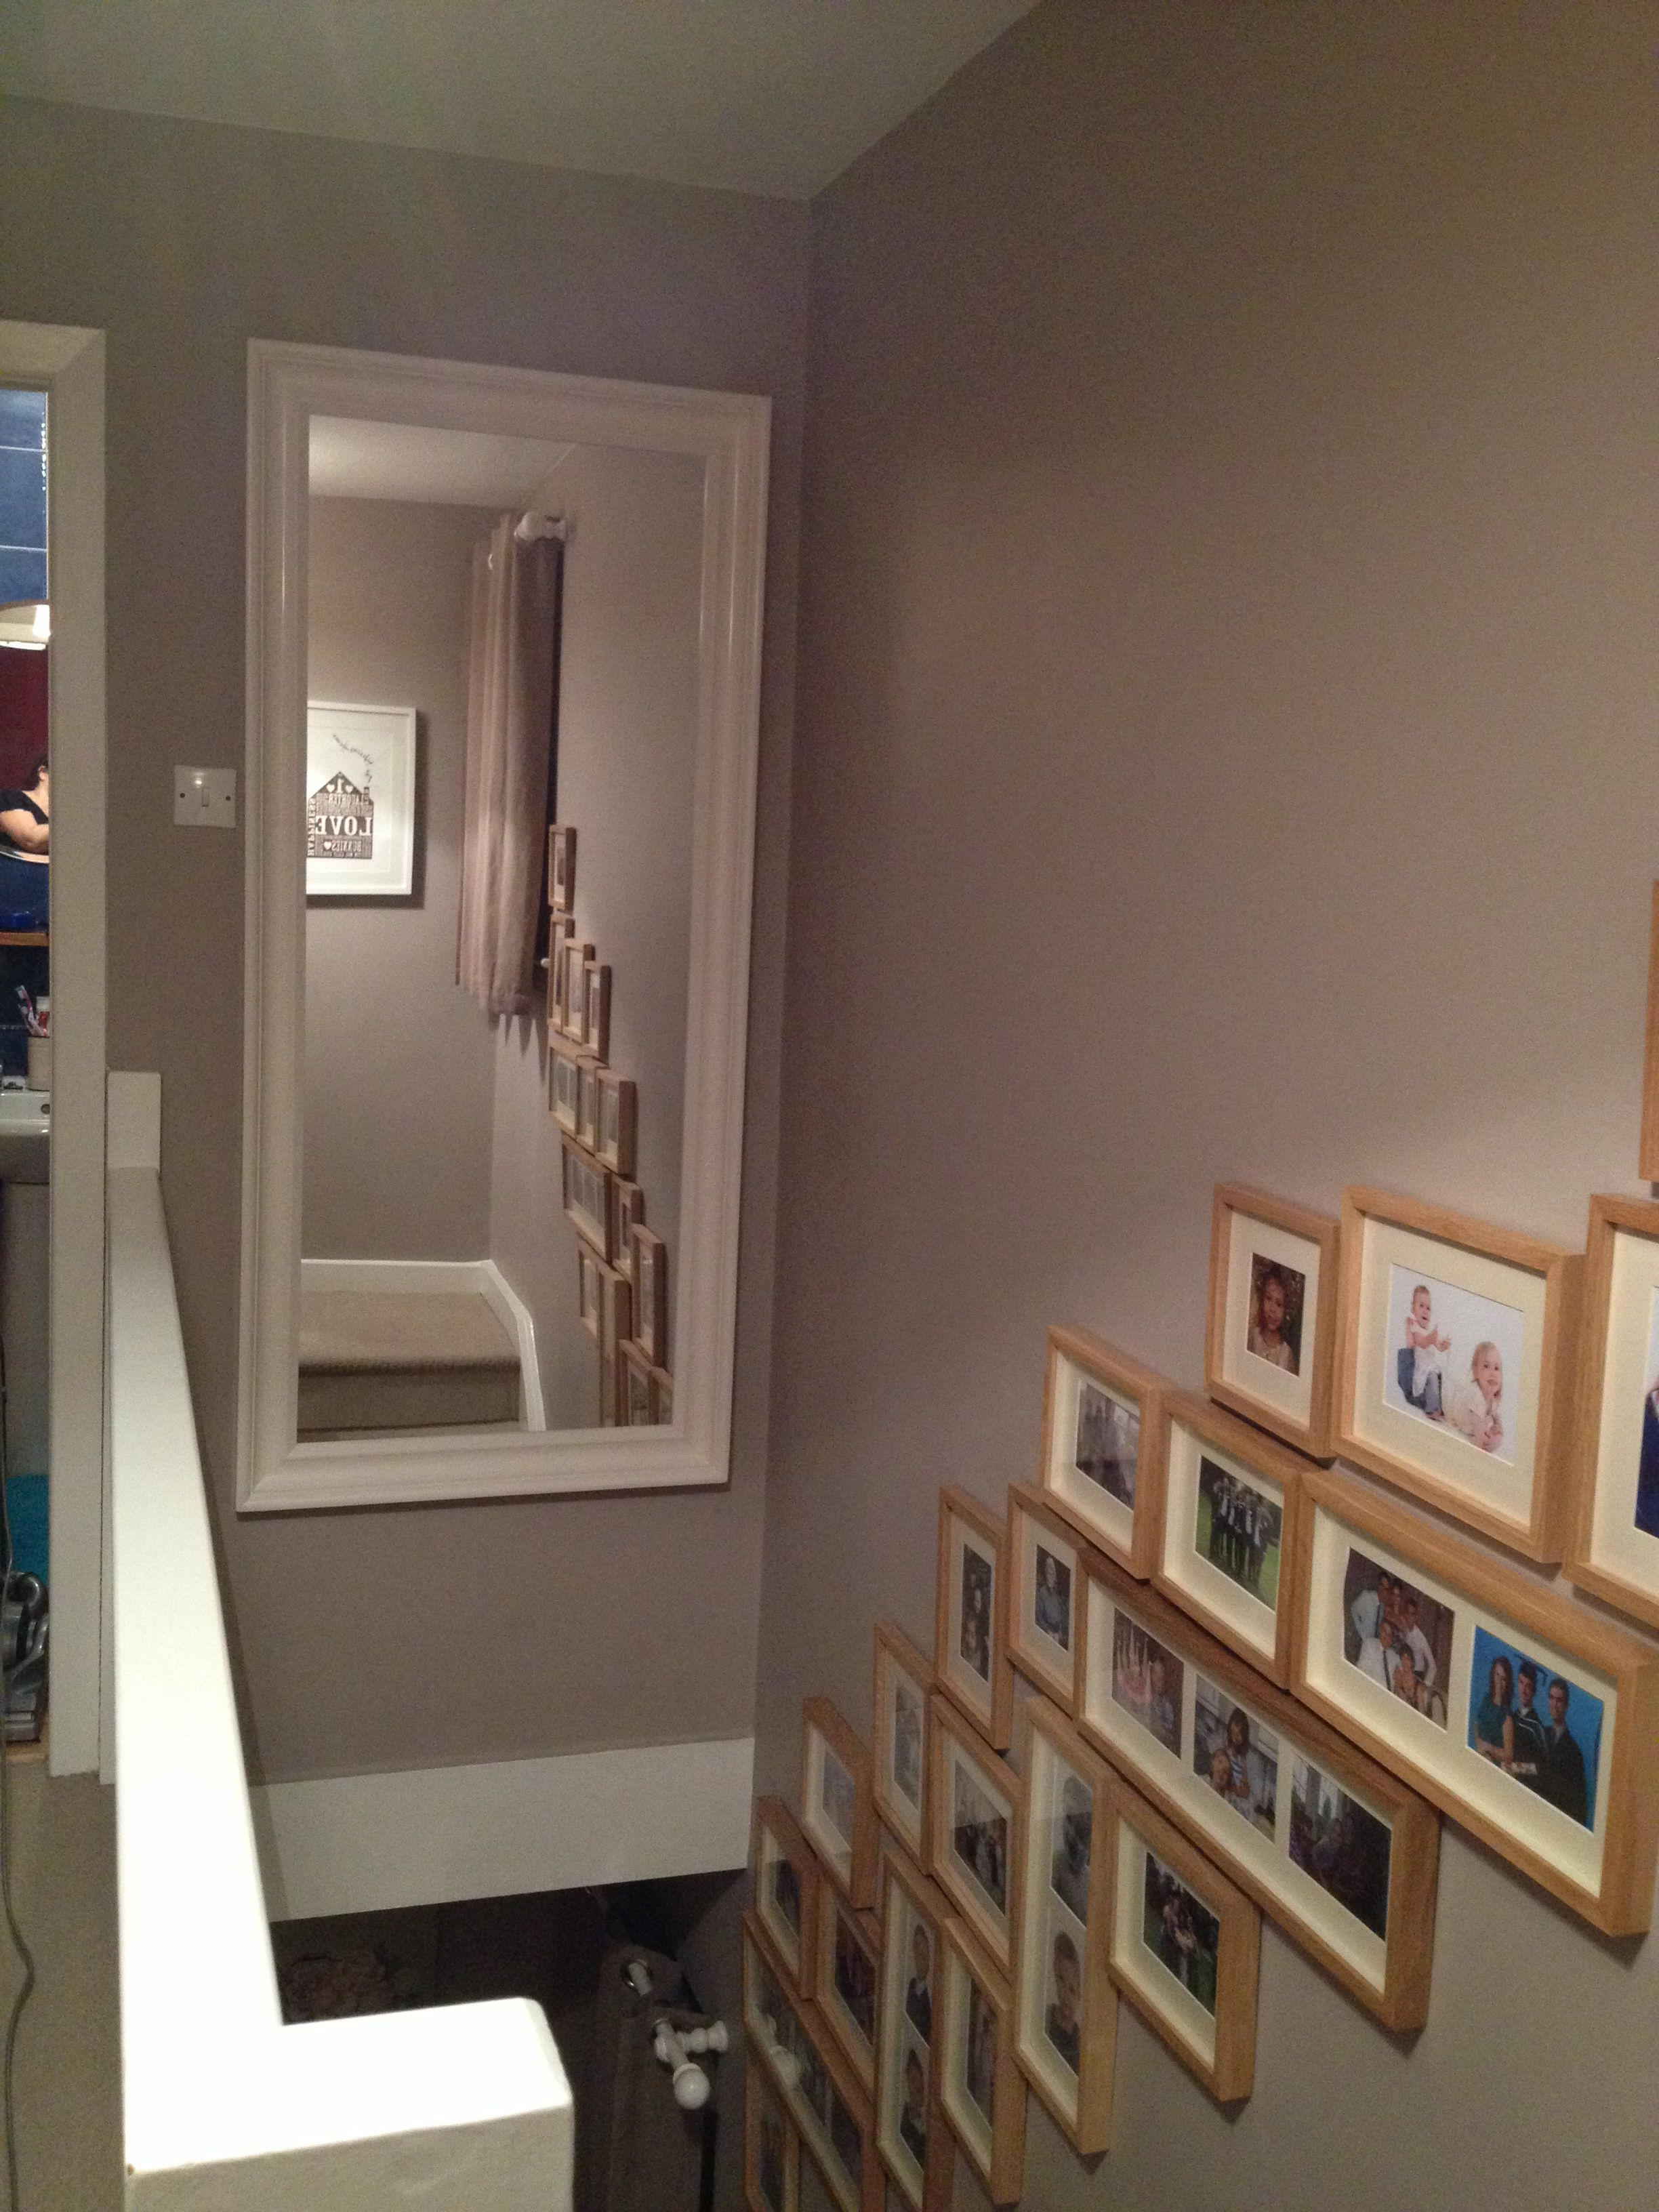 Dulux Soft Truffle Walls Oversized Mirror From Decorated Hall Stairs Landing